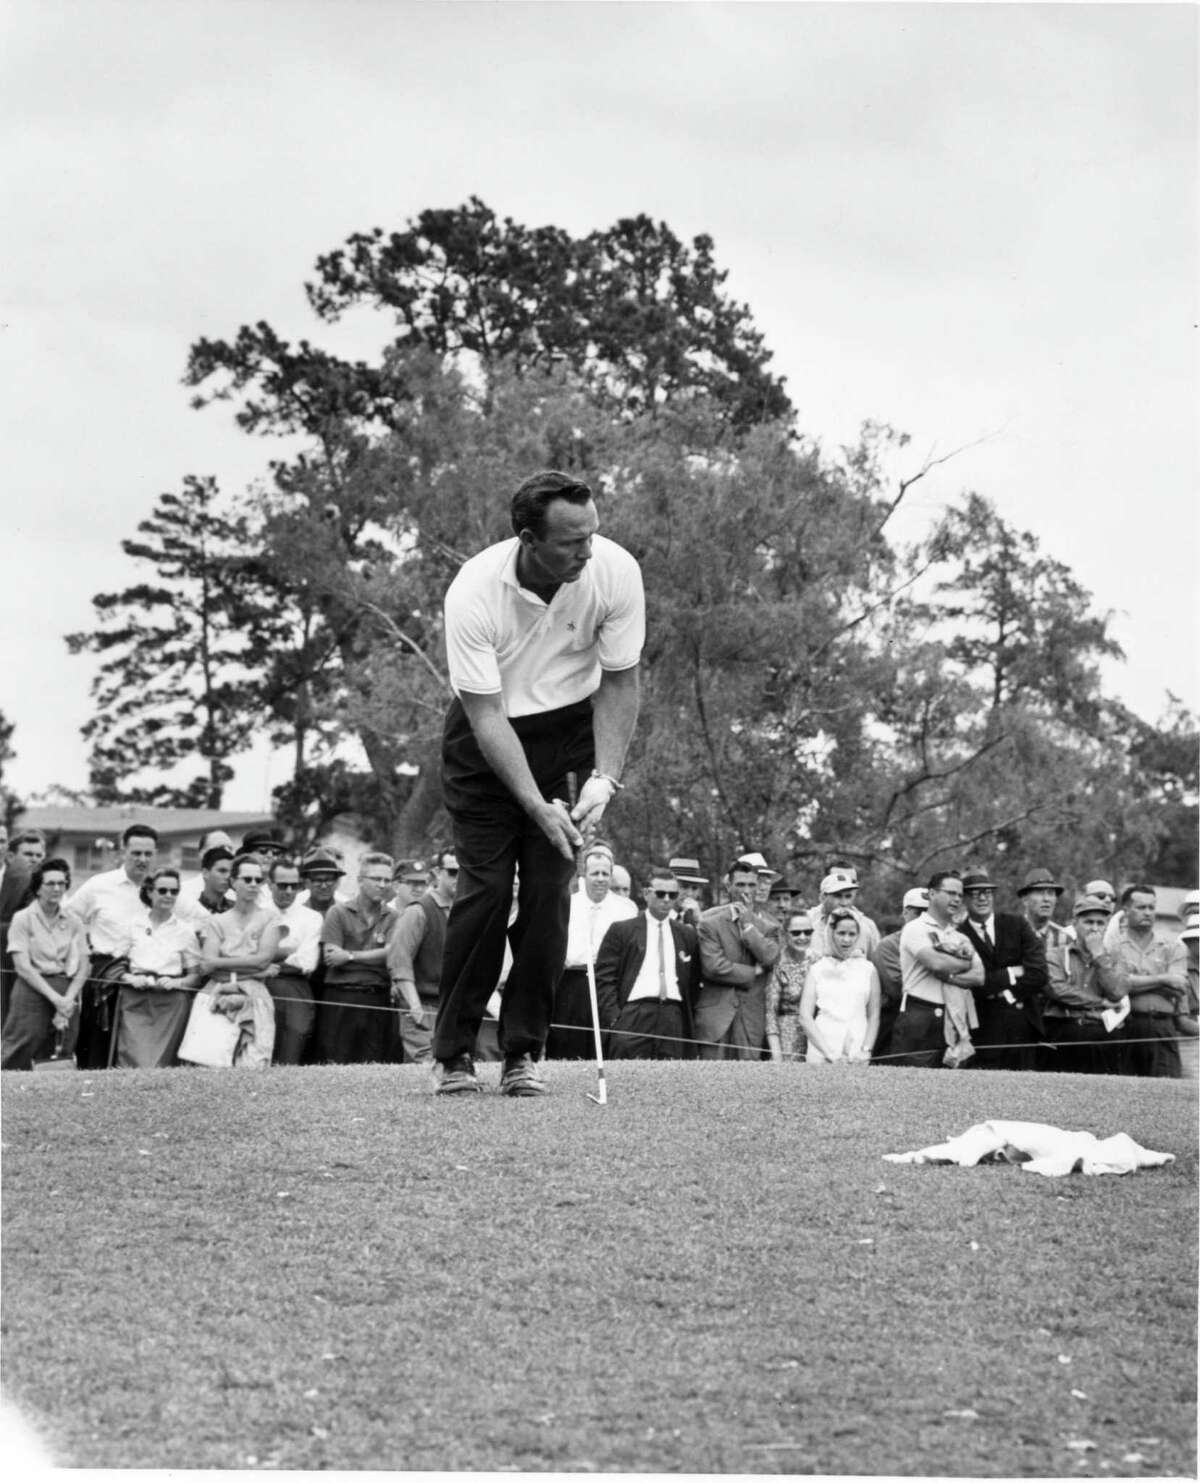 Golfing legend Arnold Palmer chips onto the ninth green of the Memorial Park golf course during the 1961 Houston Open. He won the event in 1957 and 1966.